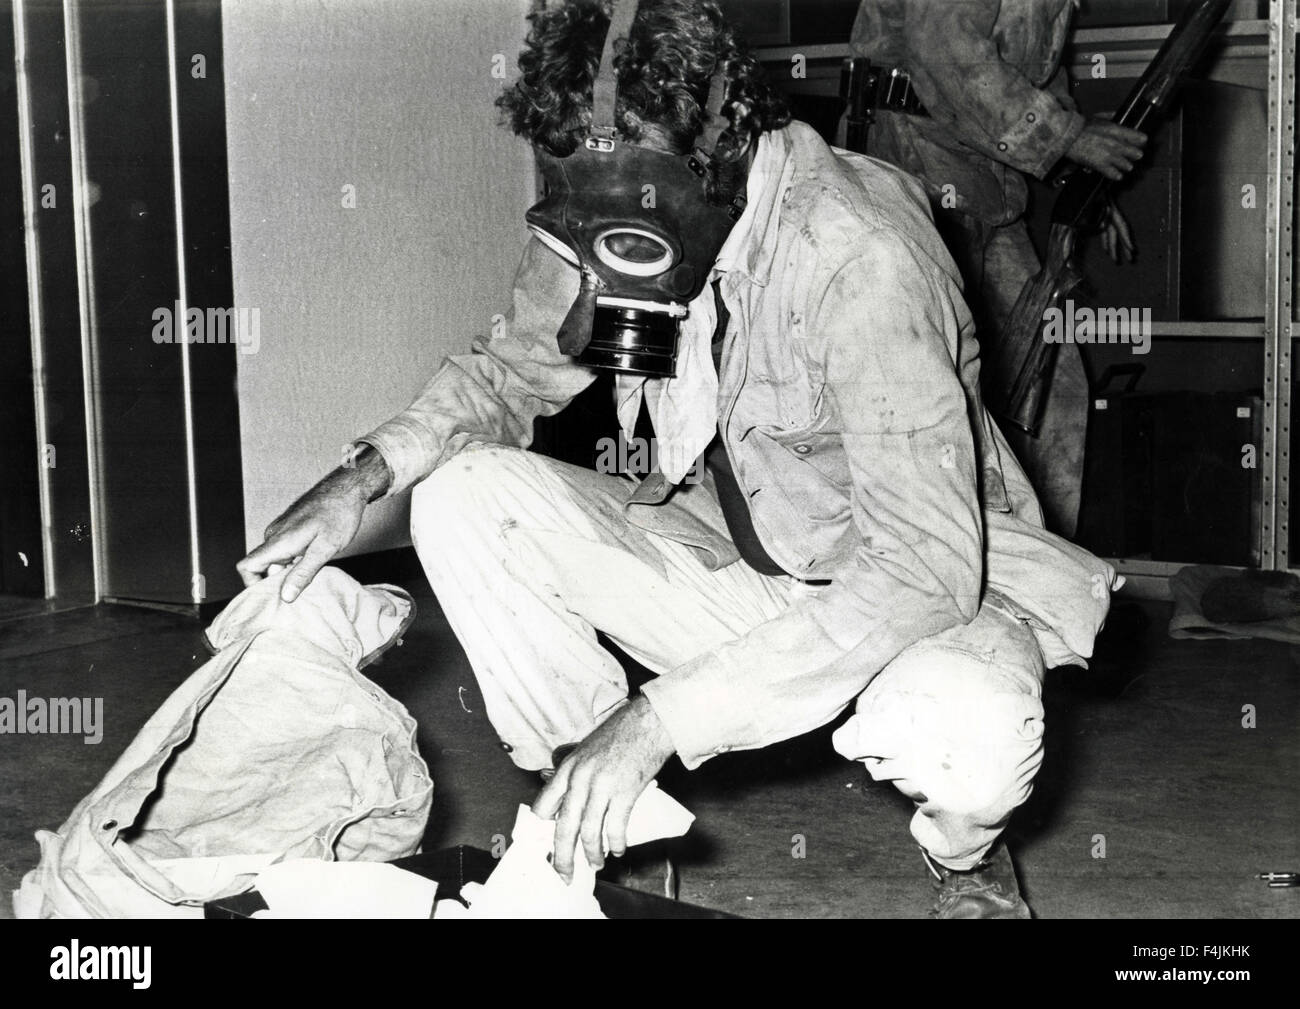 Man with gas mask raids, movie still of unidentified movie - Stock Image